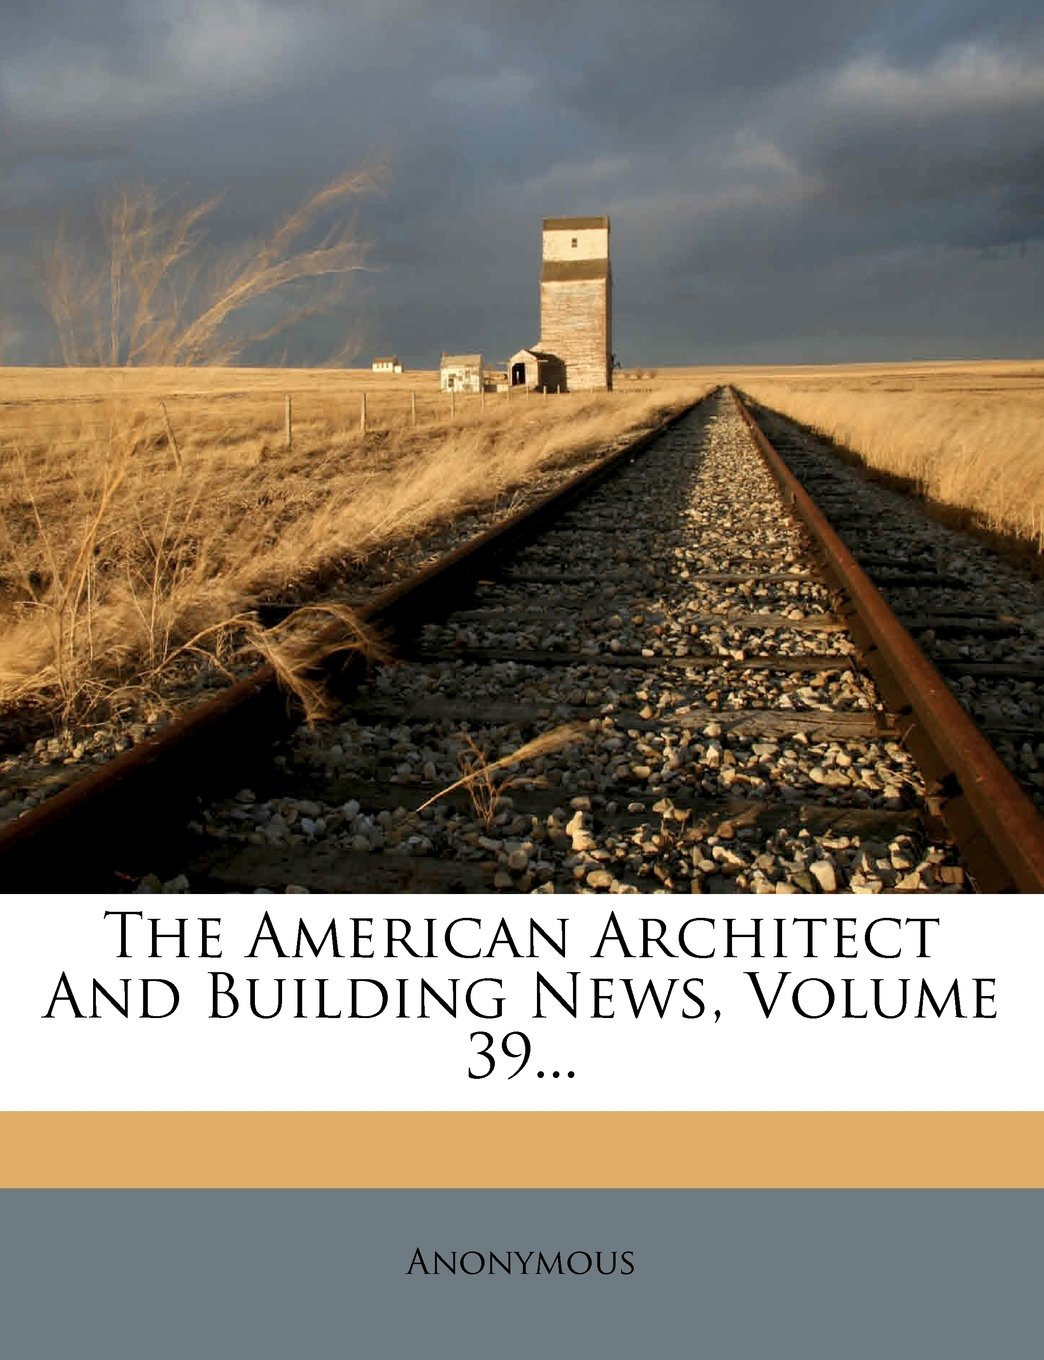 The American Architect And Building News, Volume 39... ebook